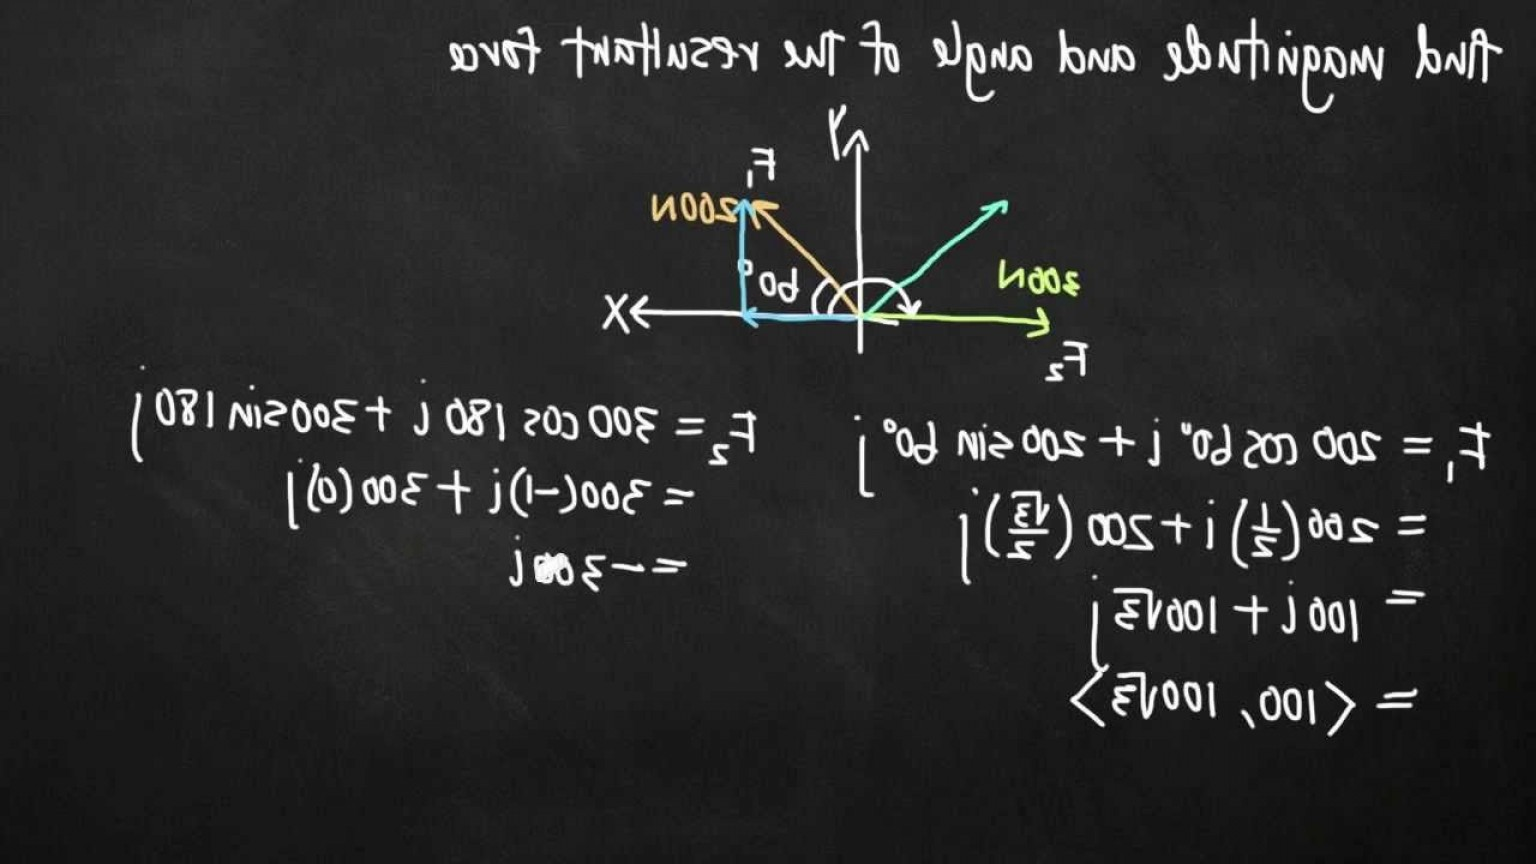 Vector Addition With Angles: Addition Of Vectors Physics By Means Of Components Resultant Force Magnitude Direction